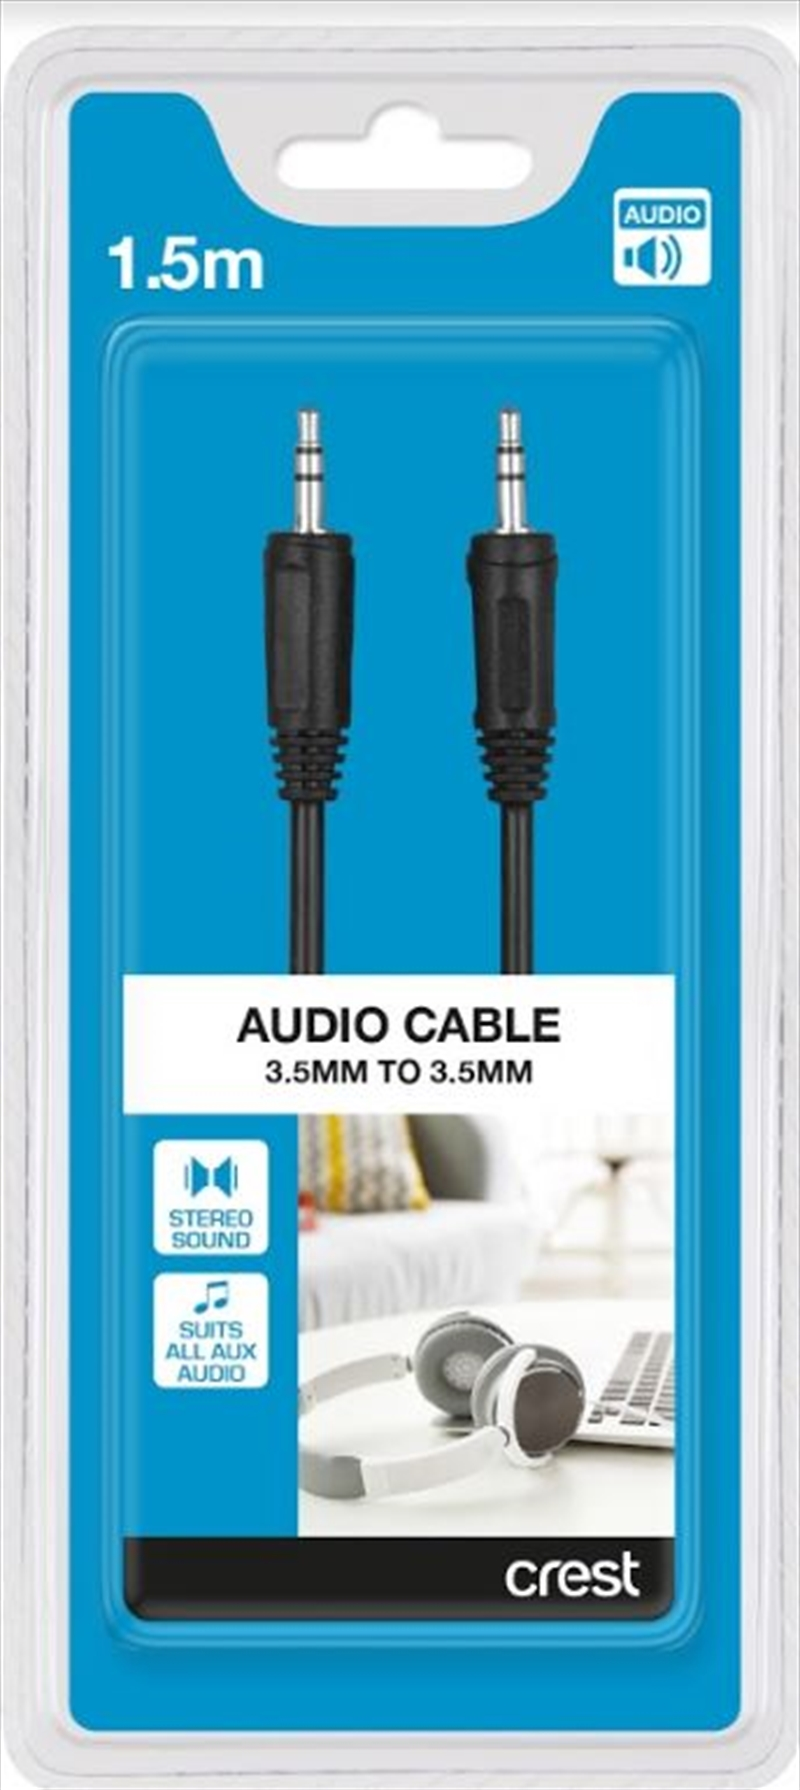 3.5mm To 3.5mm Audio Cable - 1.5M | Accessories